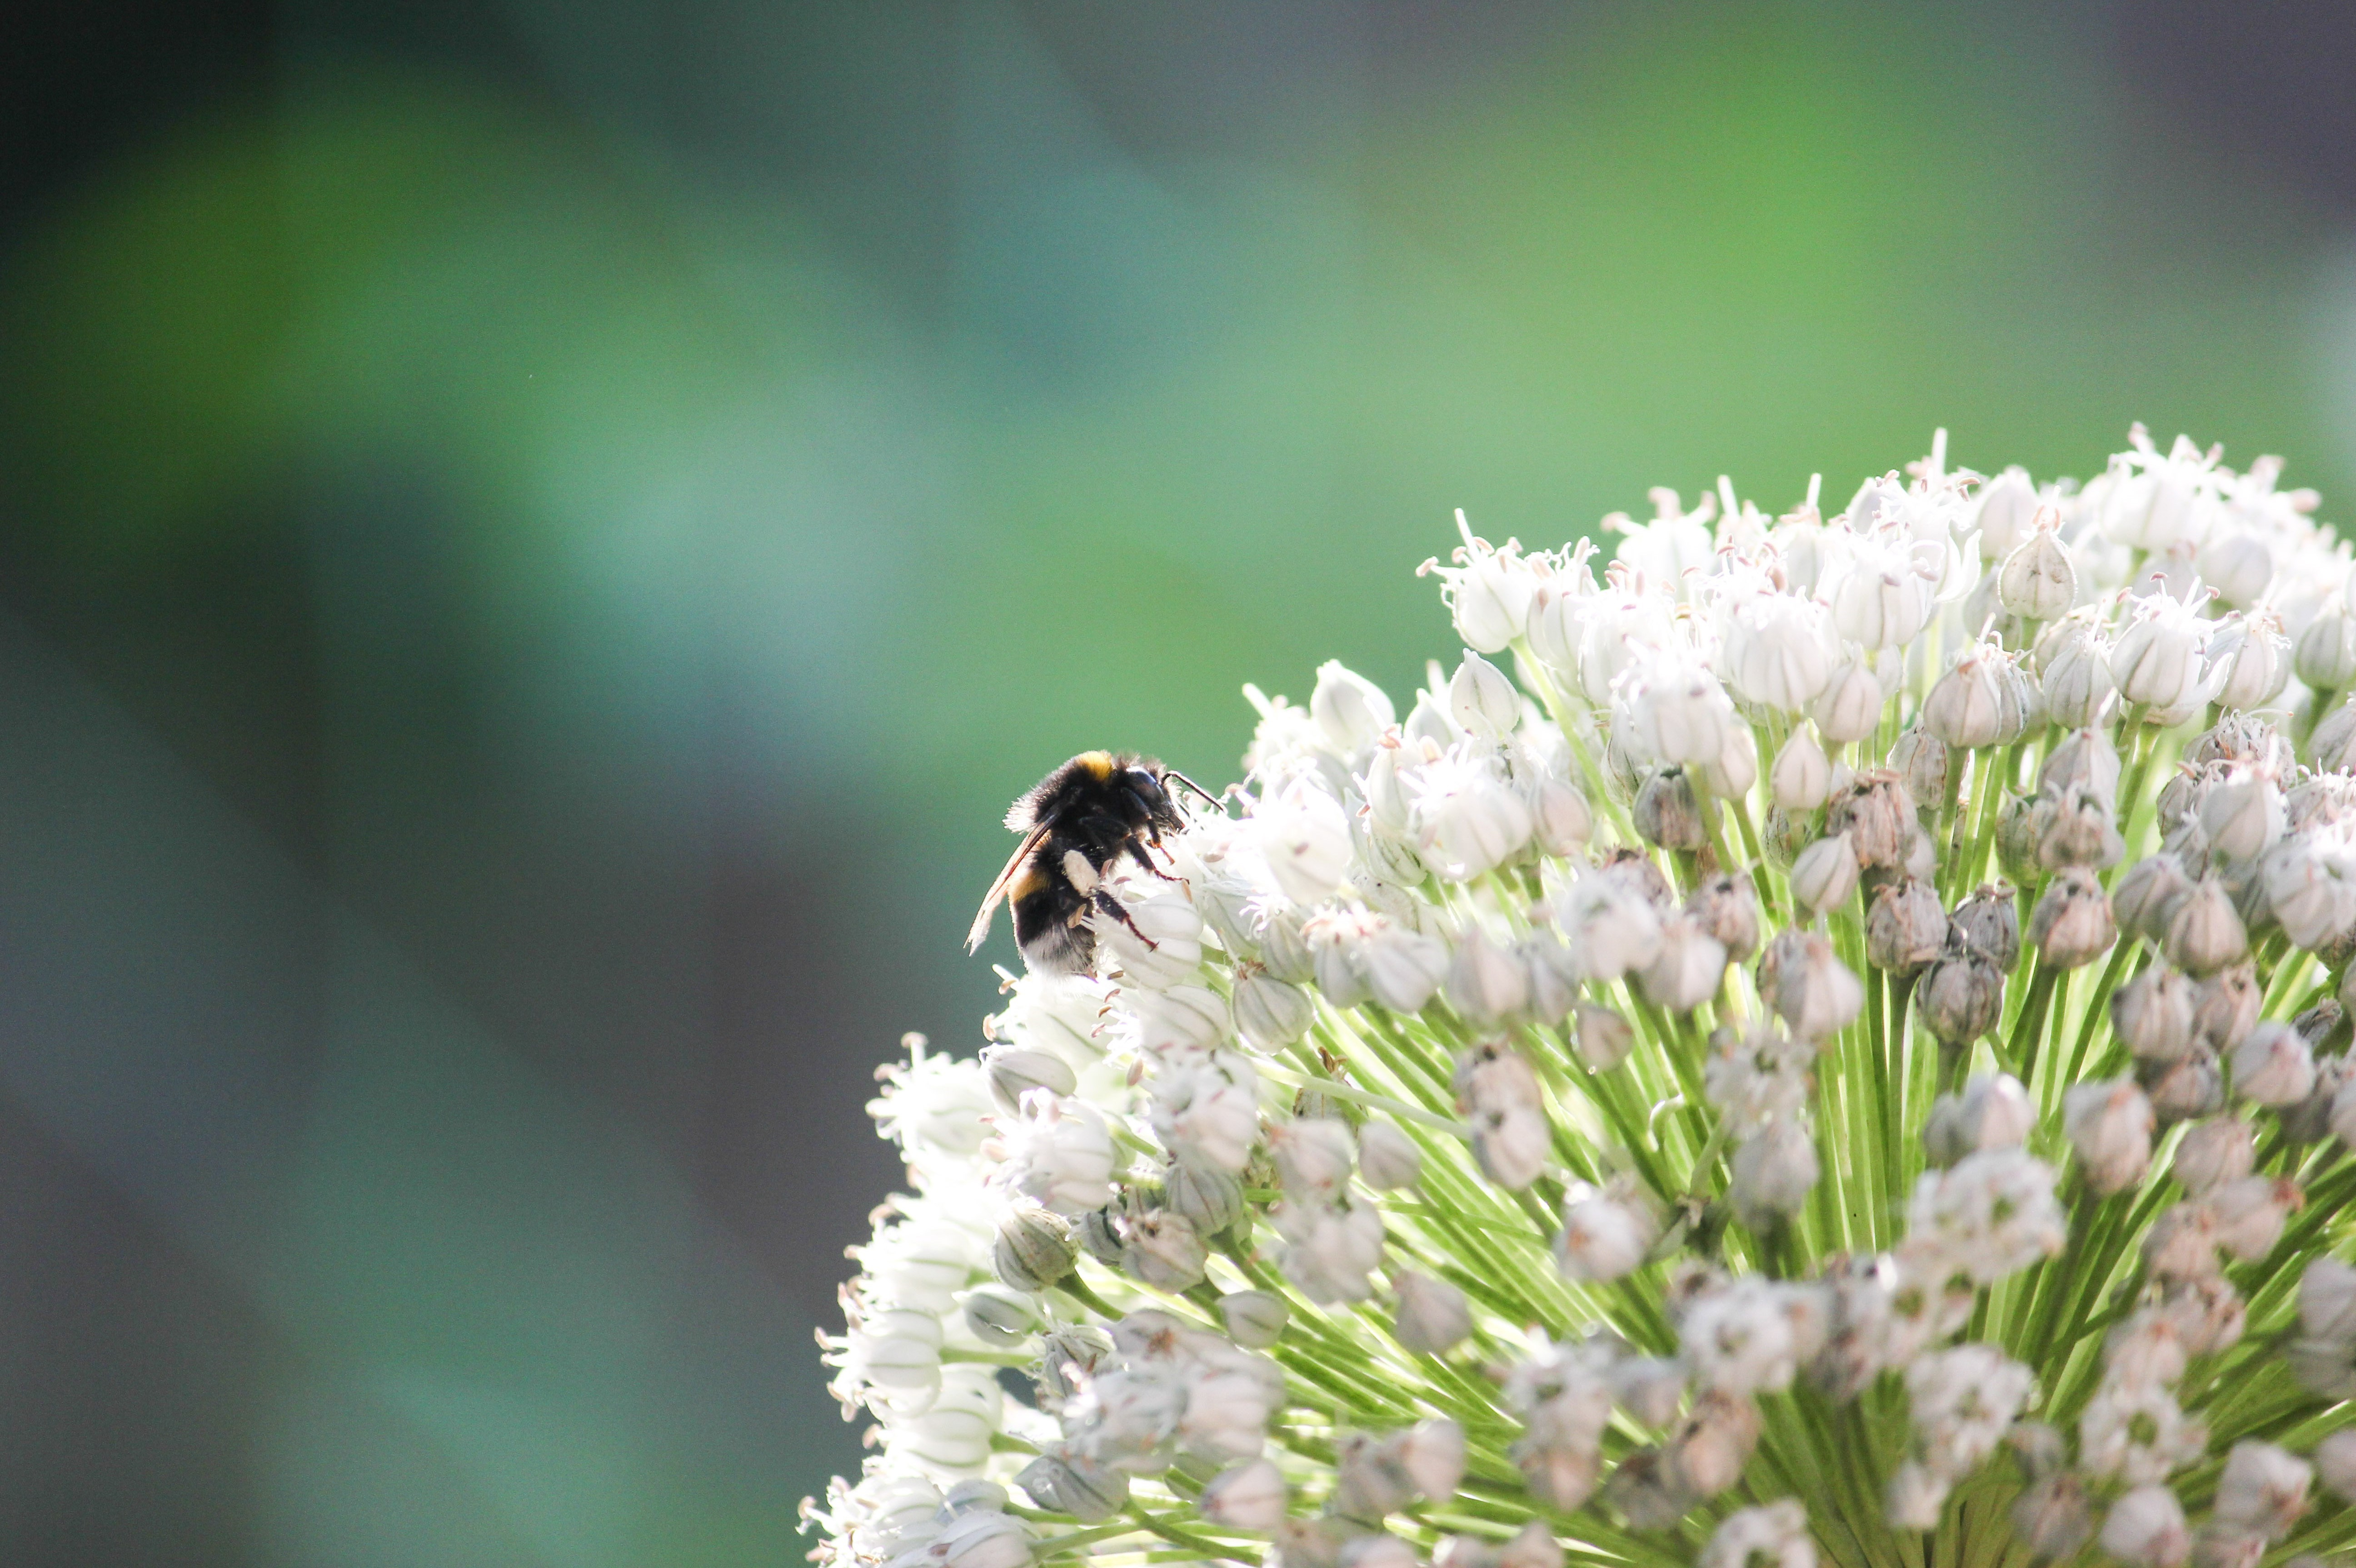 bee and round budded flower.jpg